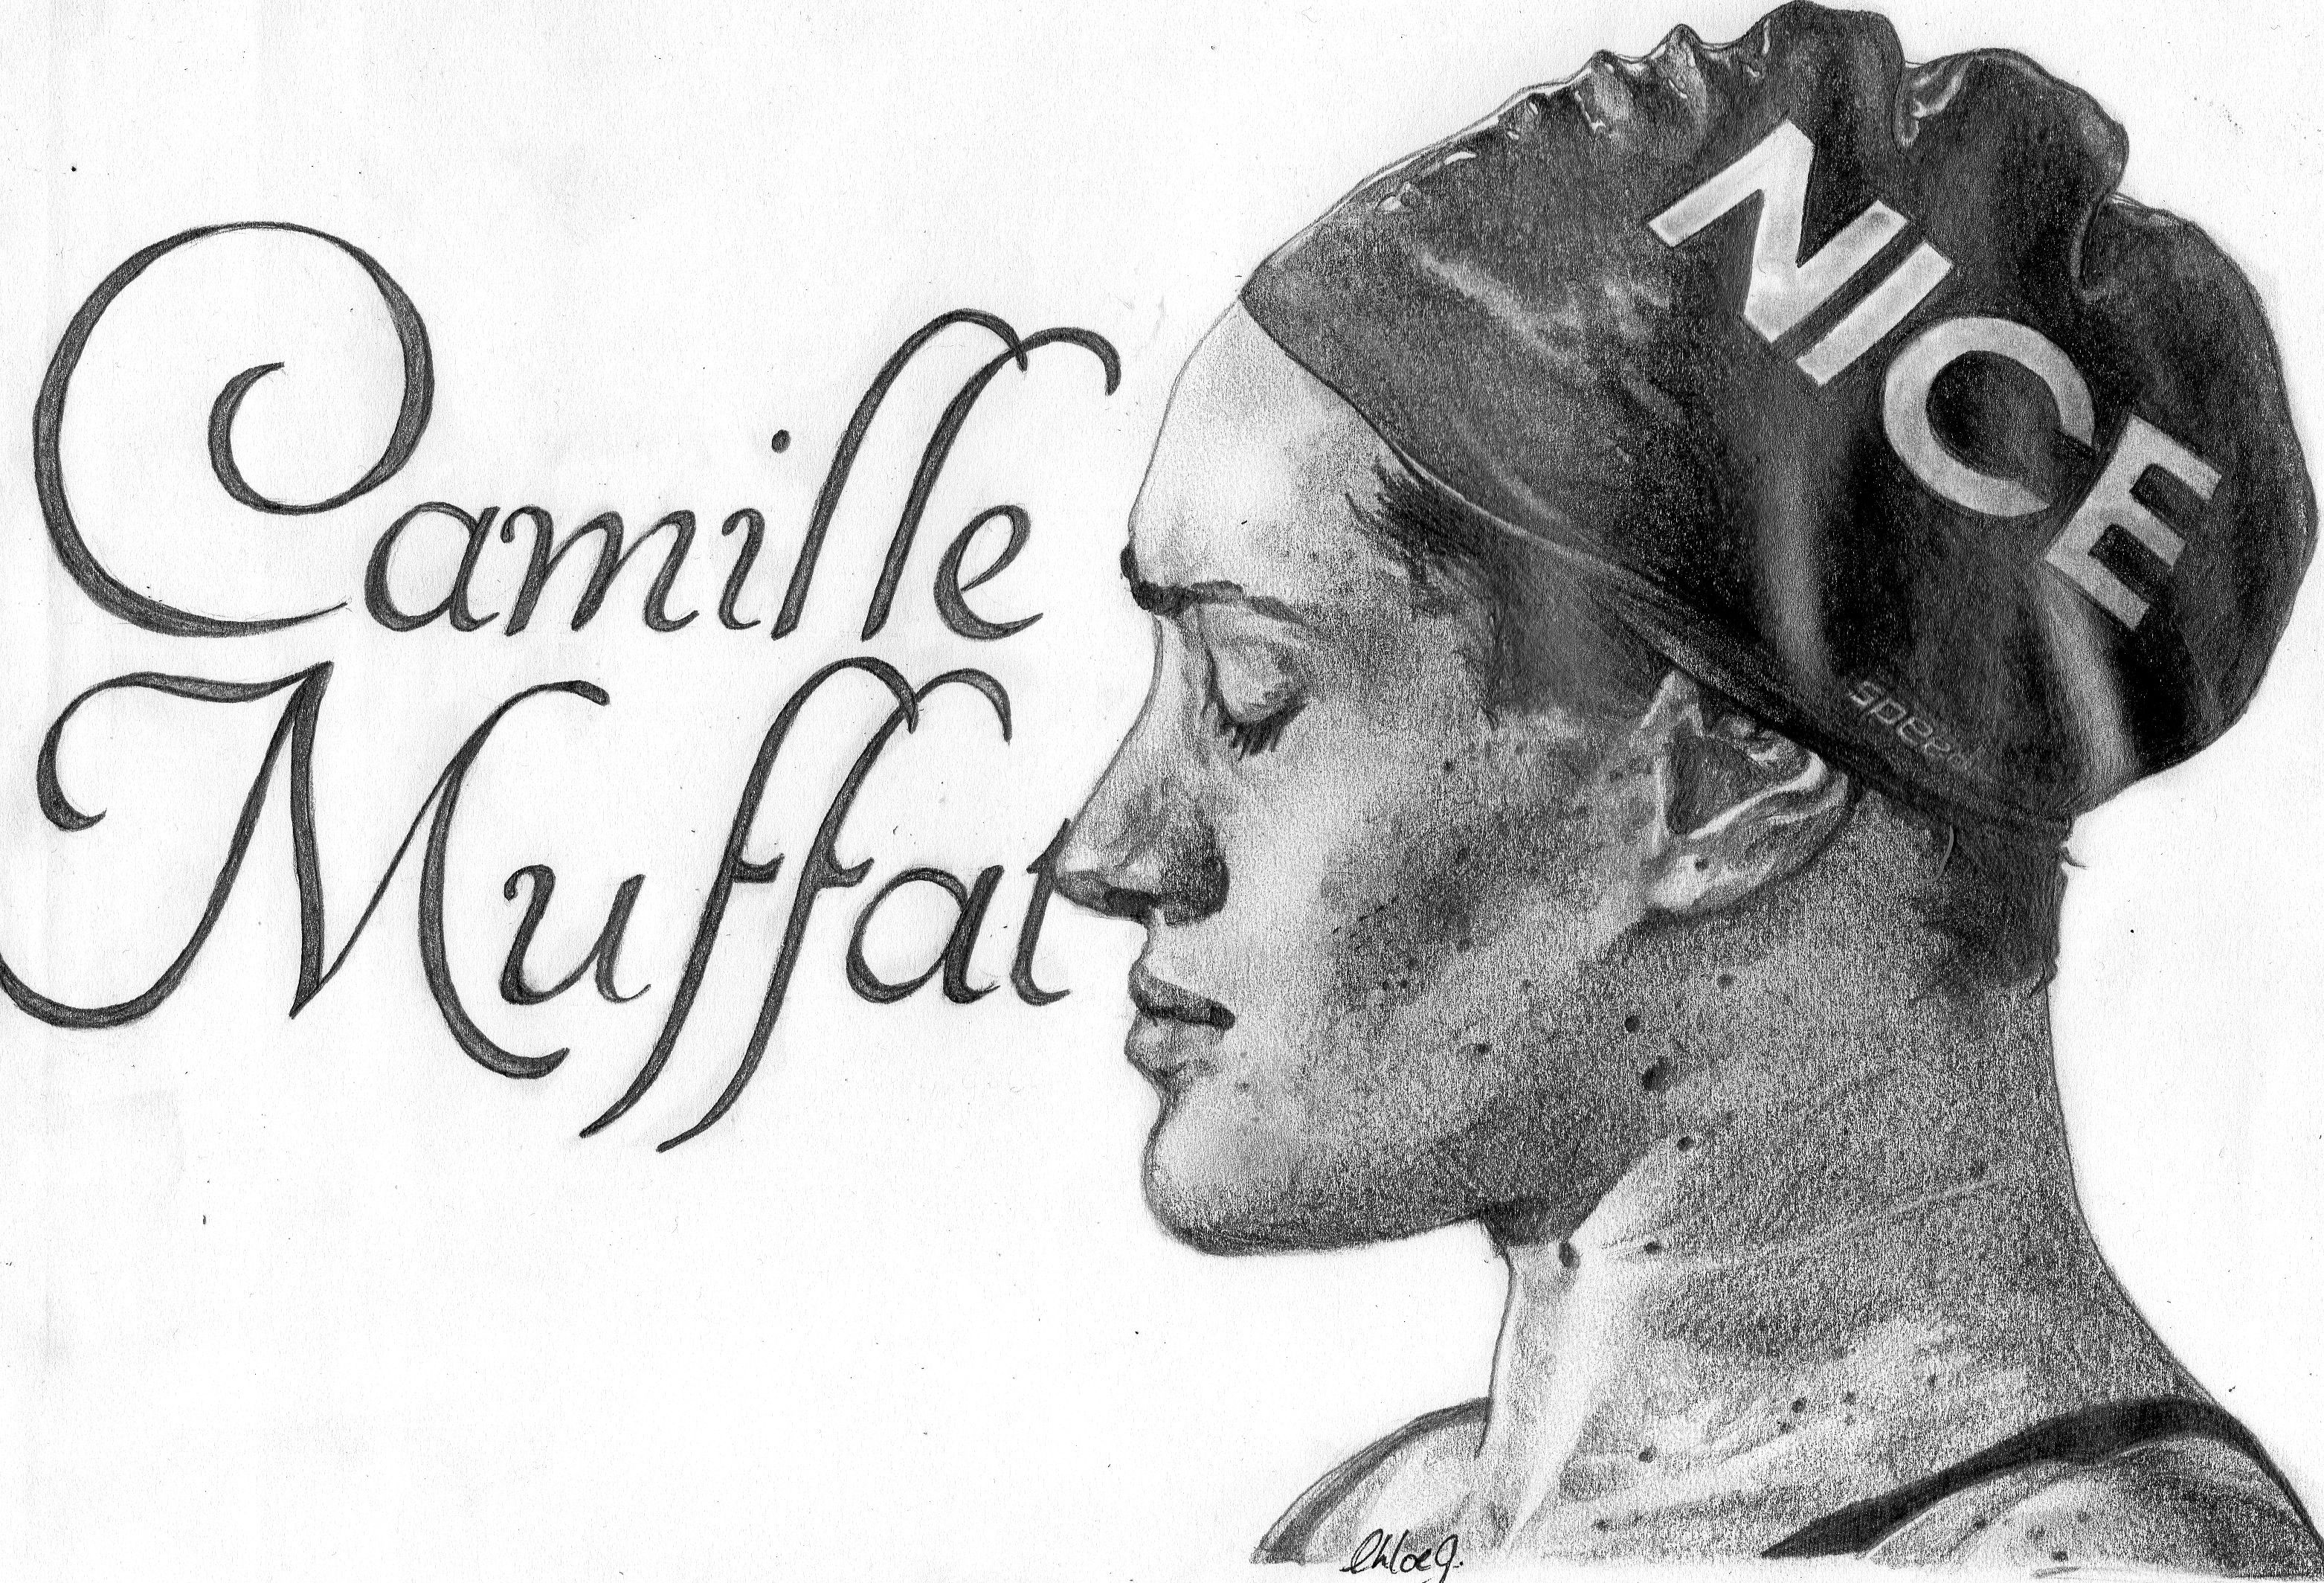 R.I.P Camille Muffat -Olympique Nice Natation, Nice, France #CamilleMuffat #Muffat #FFN #Nice #swiming